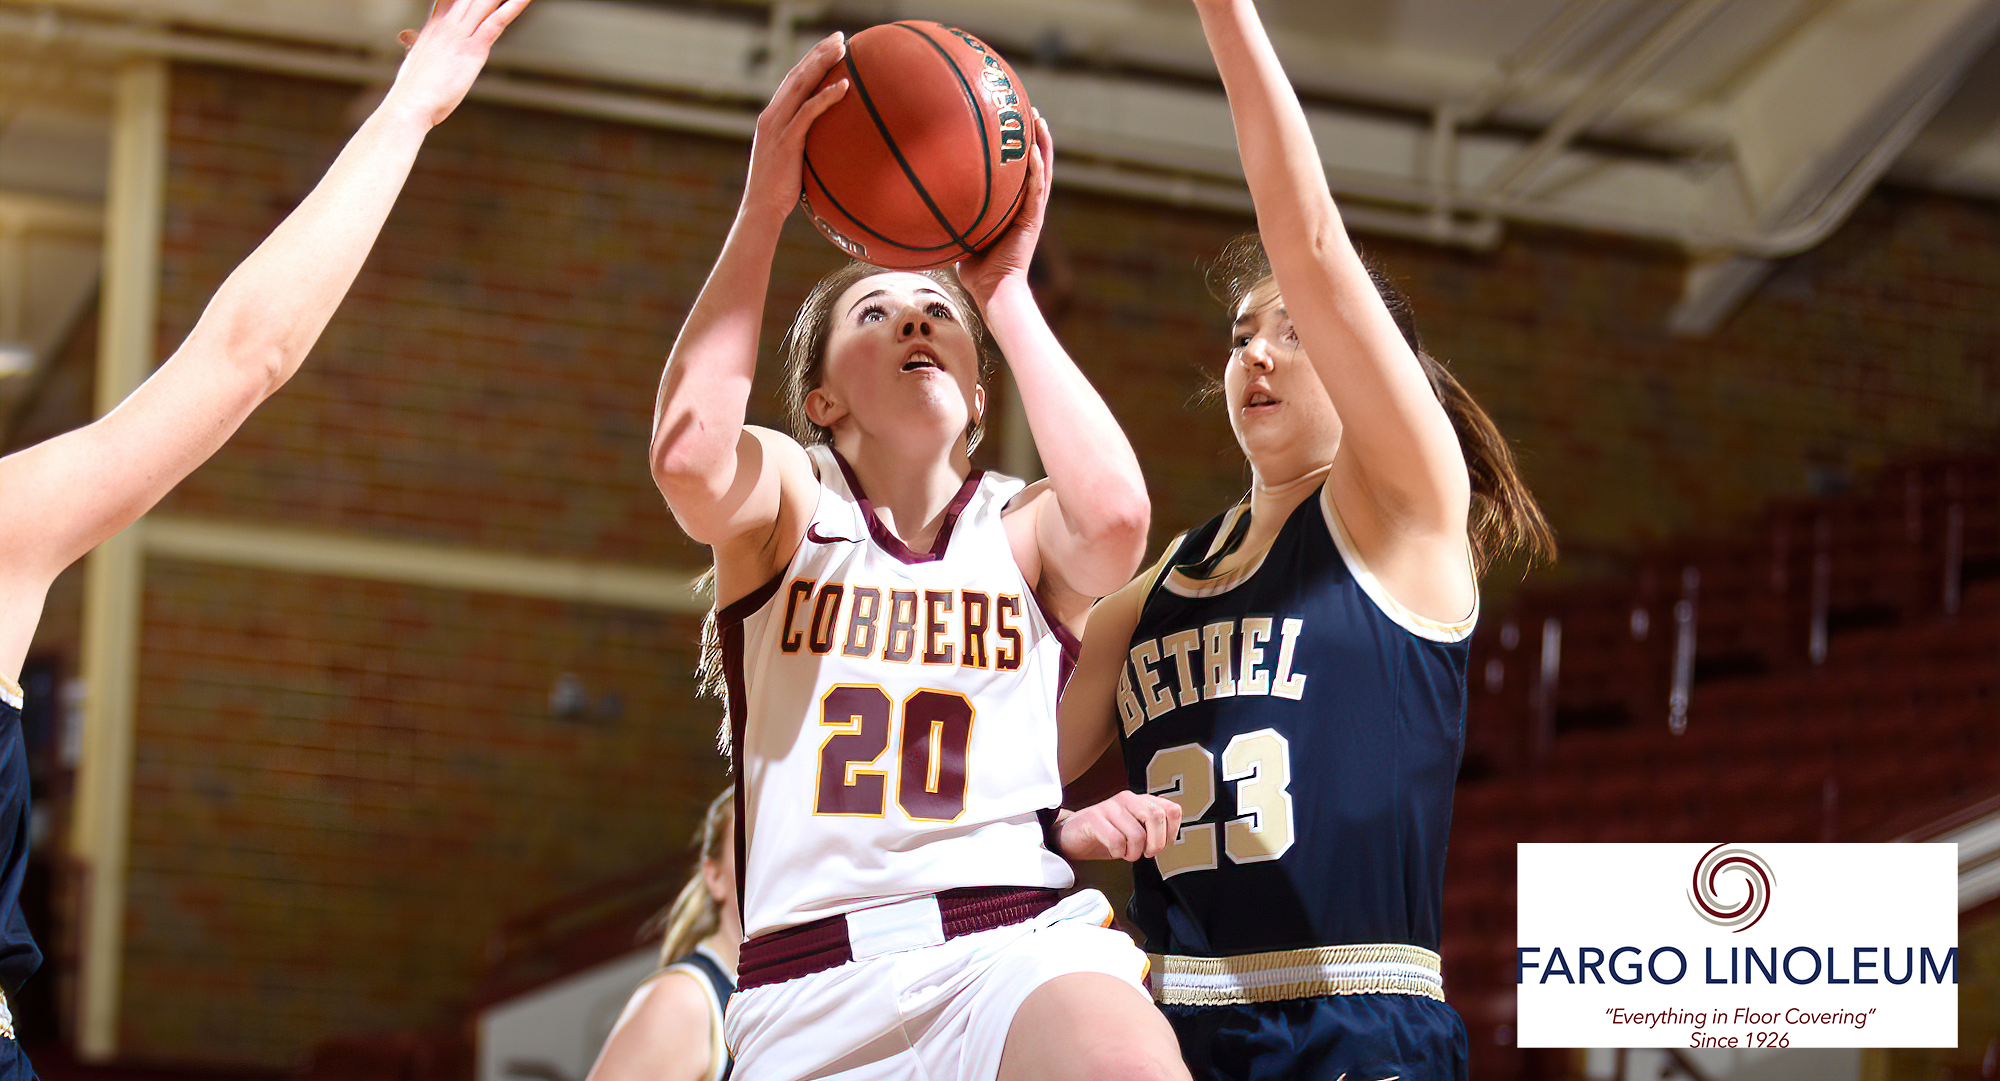 Emily Beseman drives the ball to the basket and goes up for two of her game-high 24 points in the first half of the Cobbers' win over Bethel.